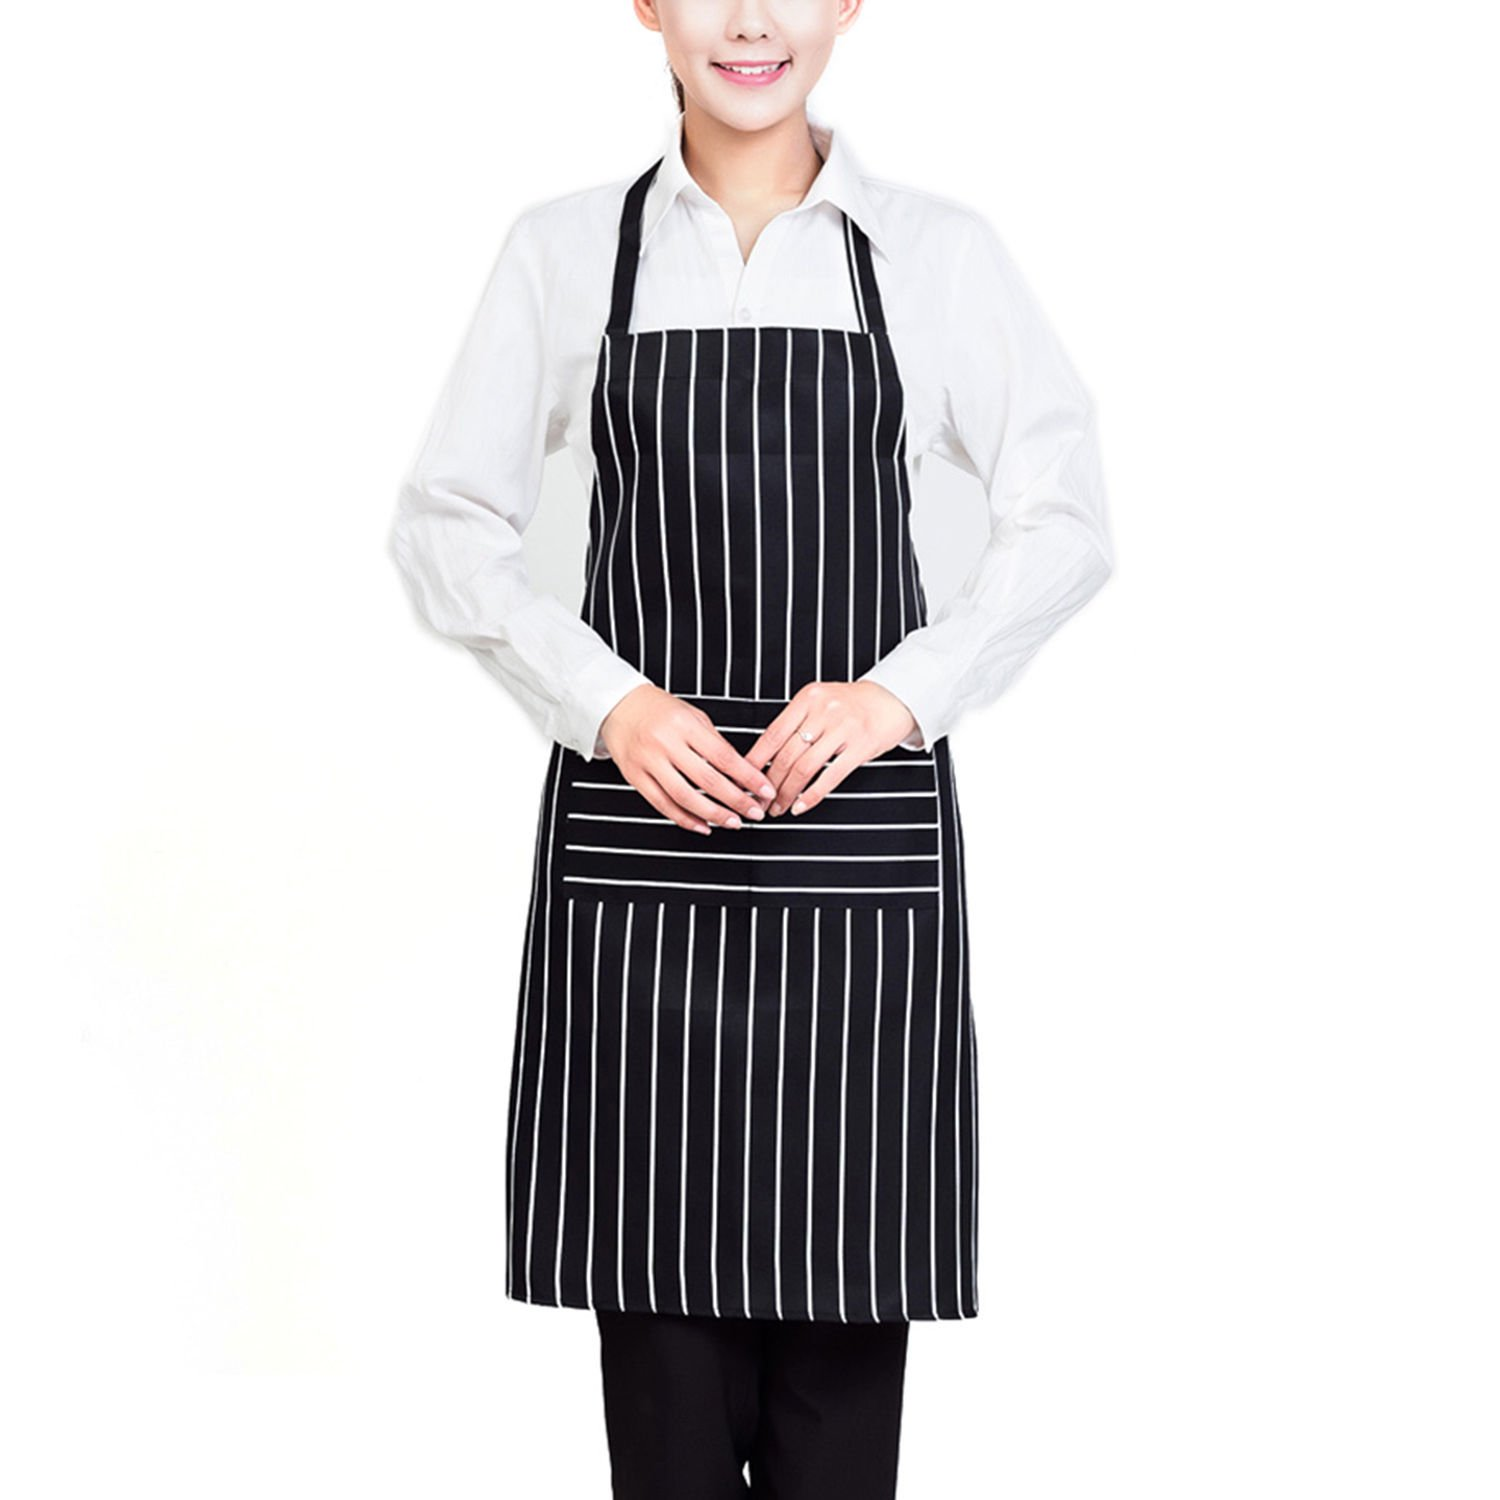 Chosen Men Women Solid Cooking Kitchen Restaurant Bib Apron Dress with Pocket - Black